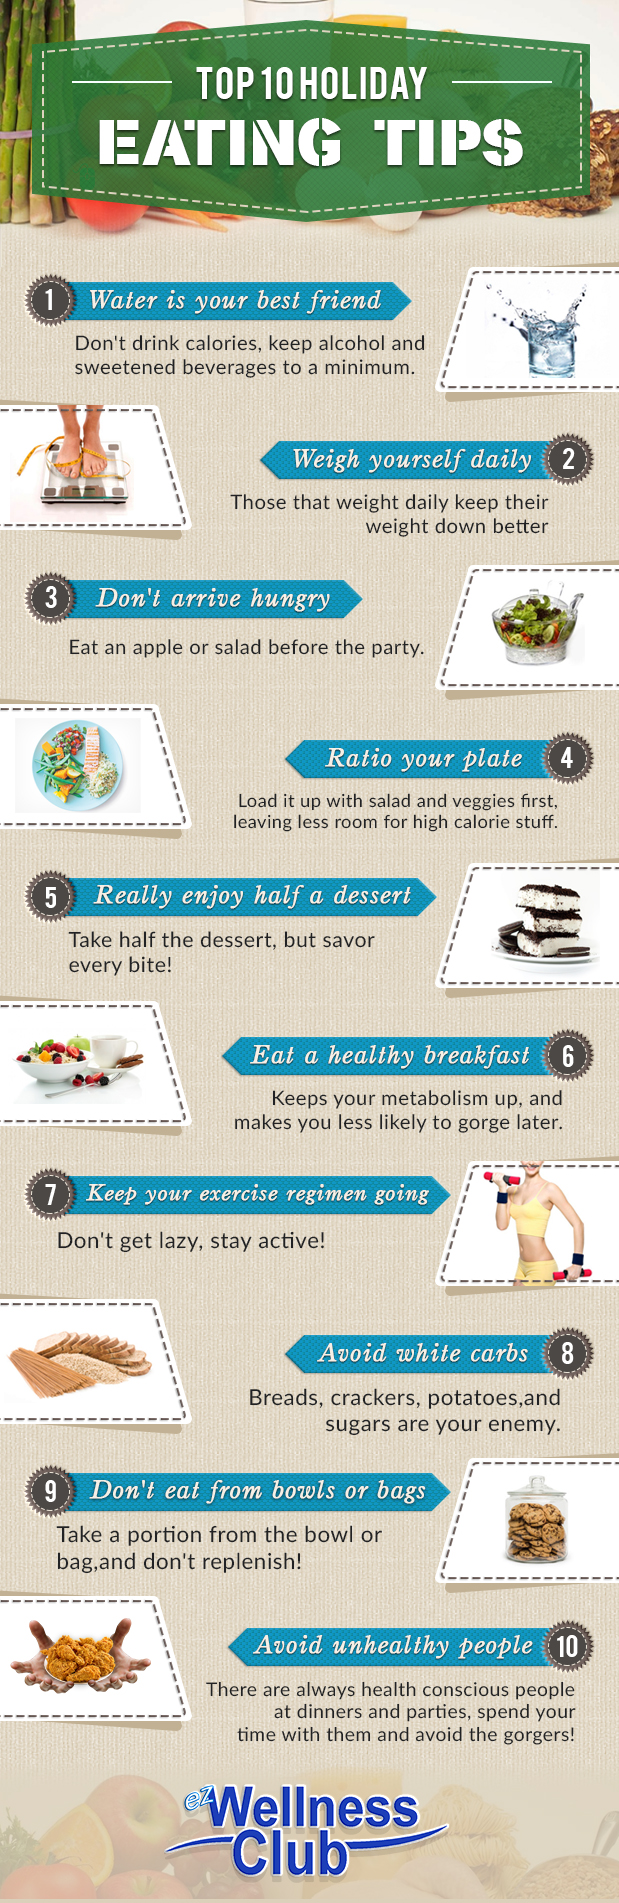 Holiday Eating Tips Infographic